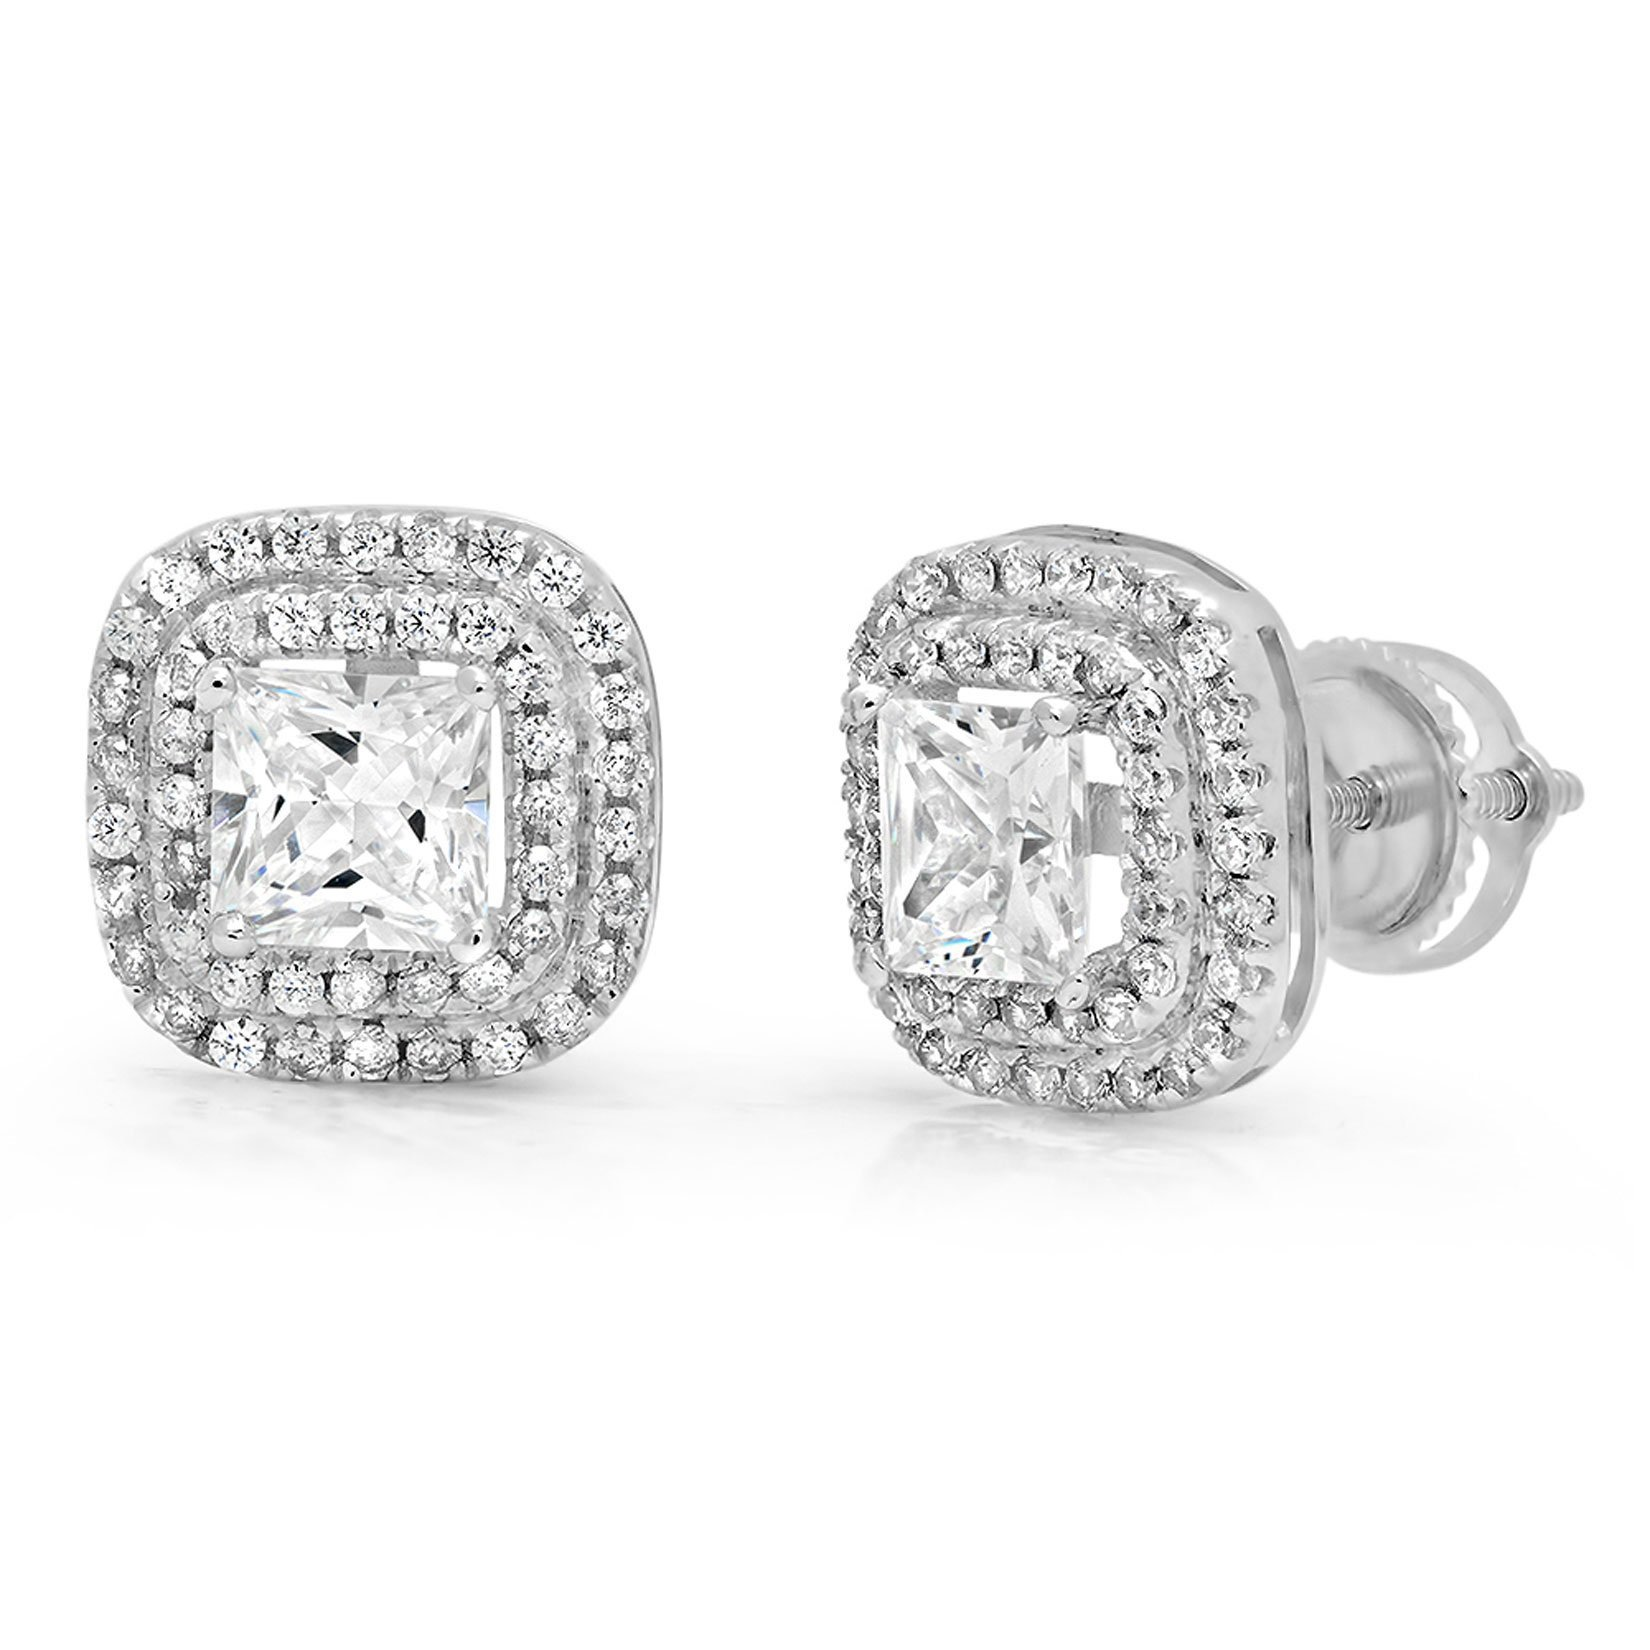 Clara Pucci 2.79 CT CZ Princess Cut SOLITAIRE Double HALO Stud EARRINGS Real 14K White GOLD